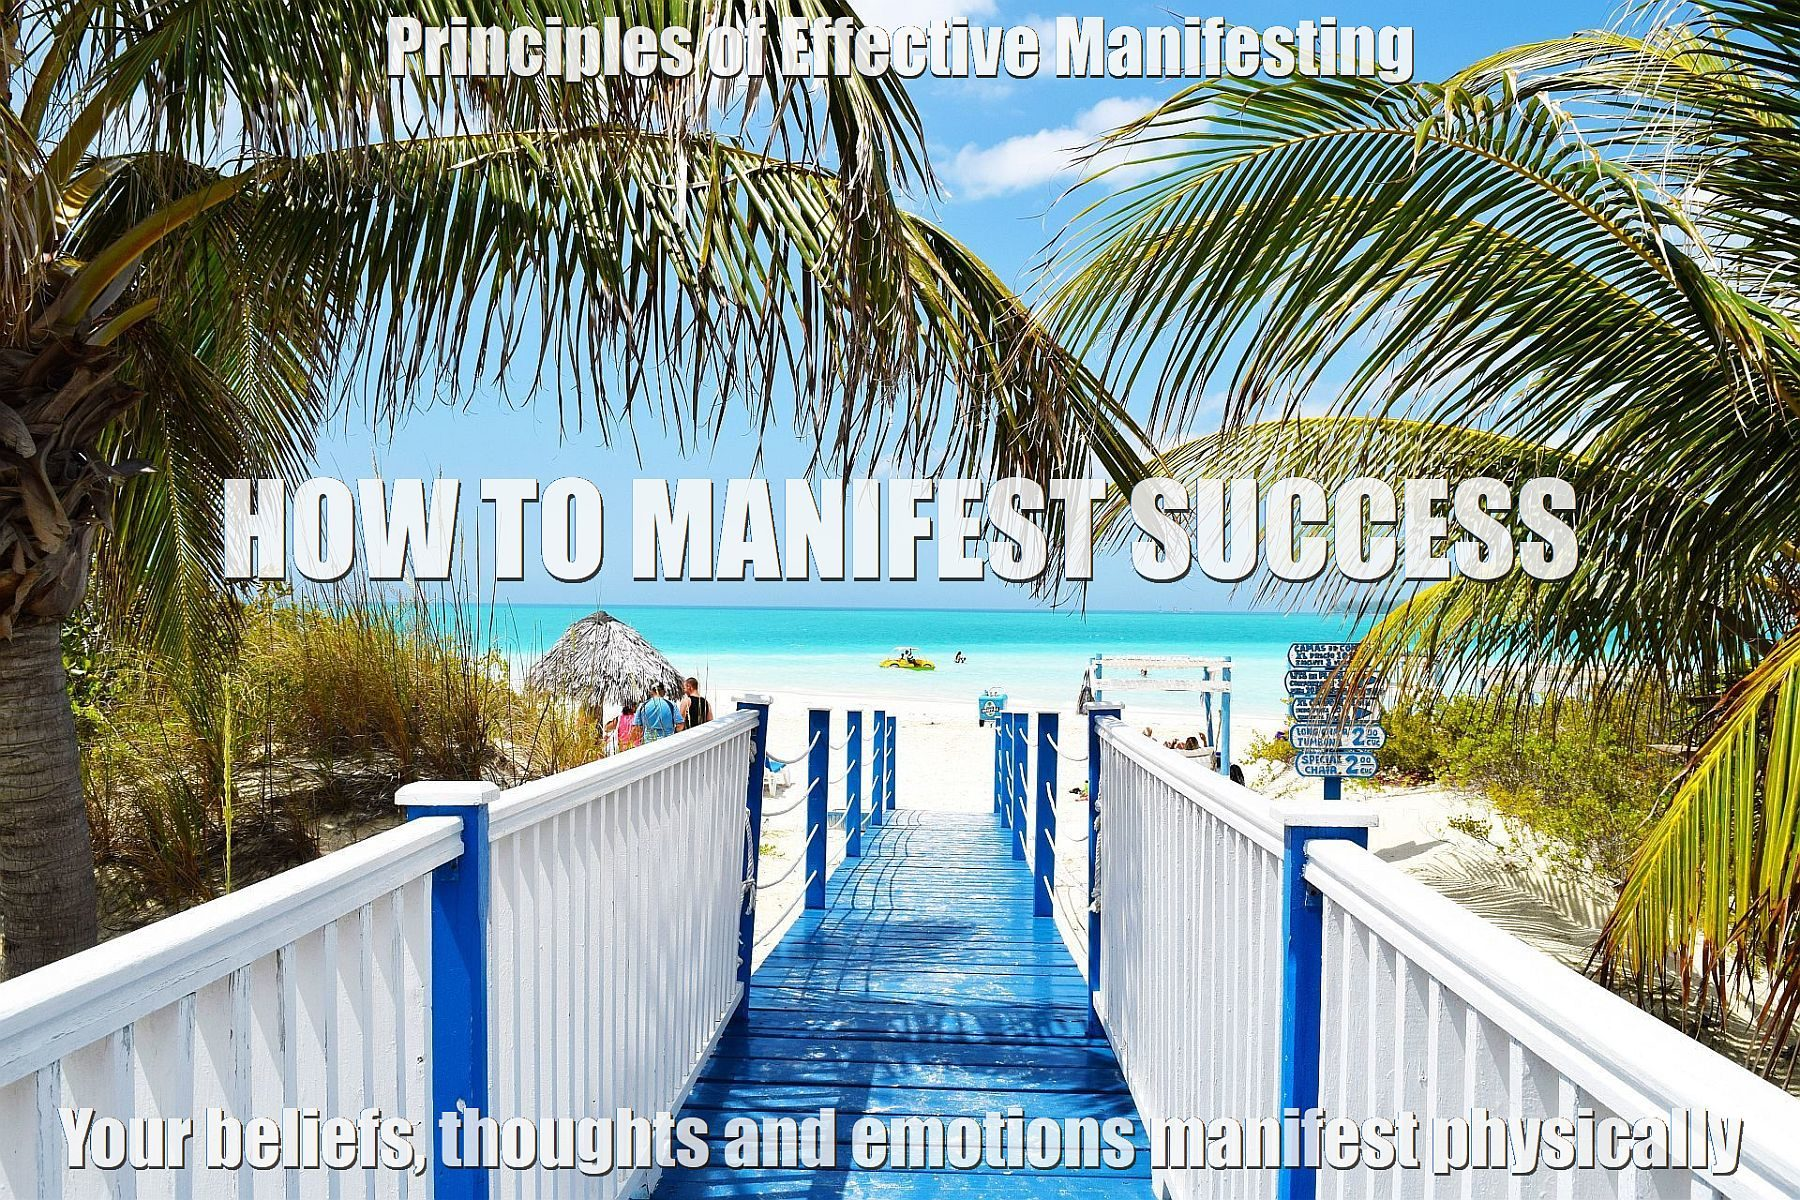 manifesting-how-to-use-unlimited-imagination-positive-desire-willpower-determination-resolve-to-manifest-success-e-1800